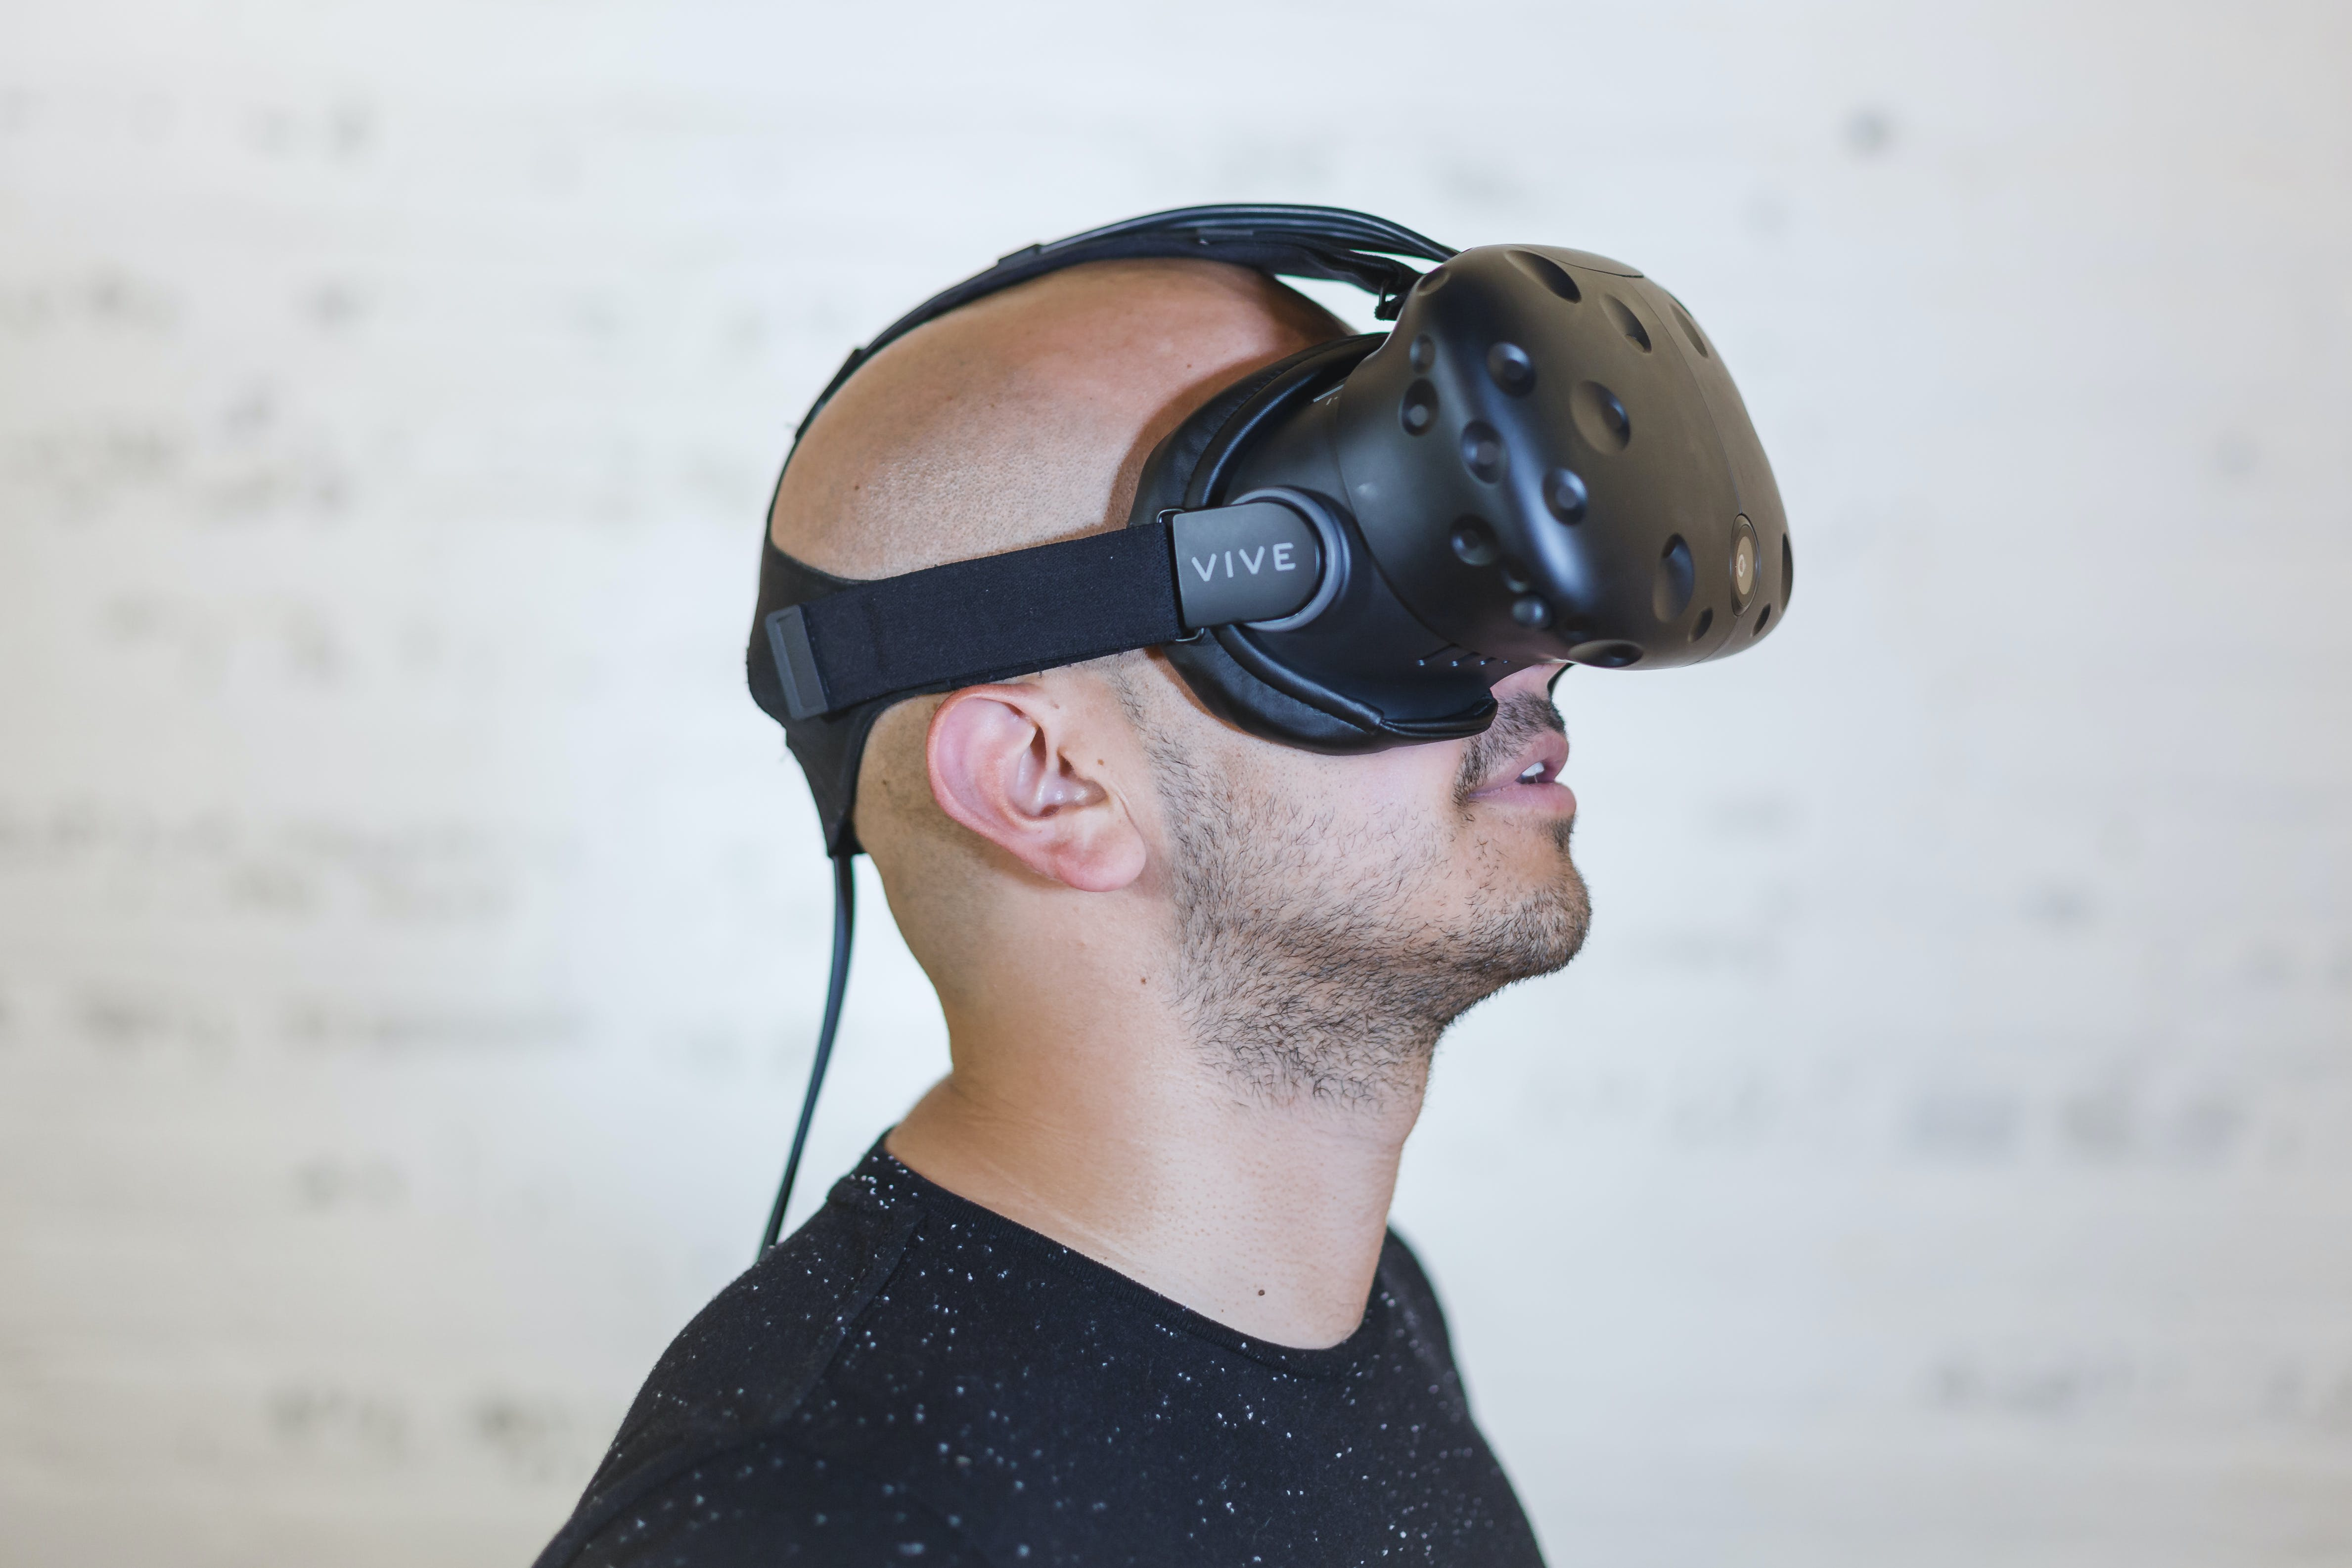 Man Wearing Black Vr Headset